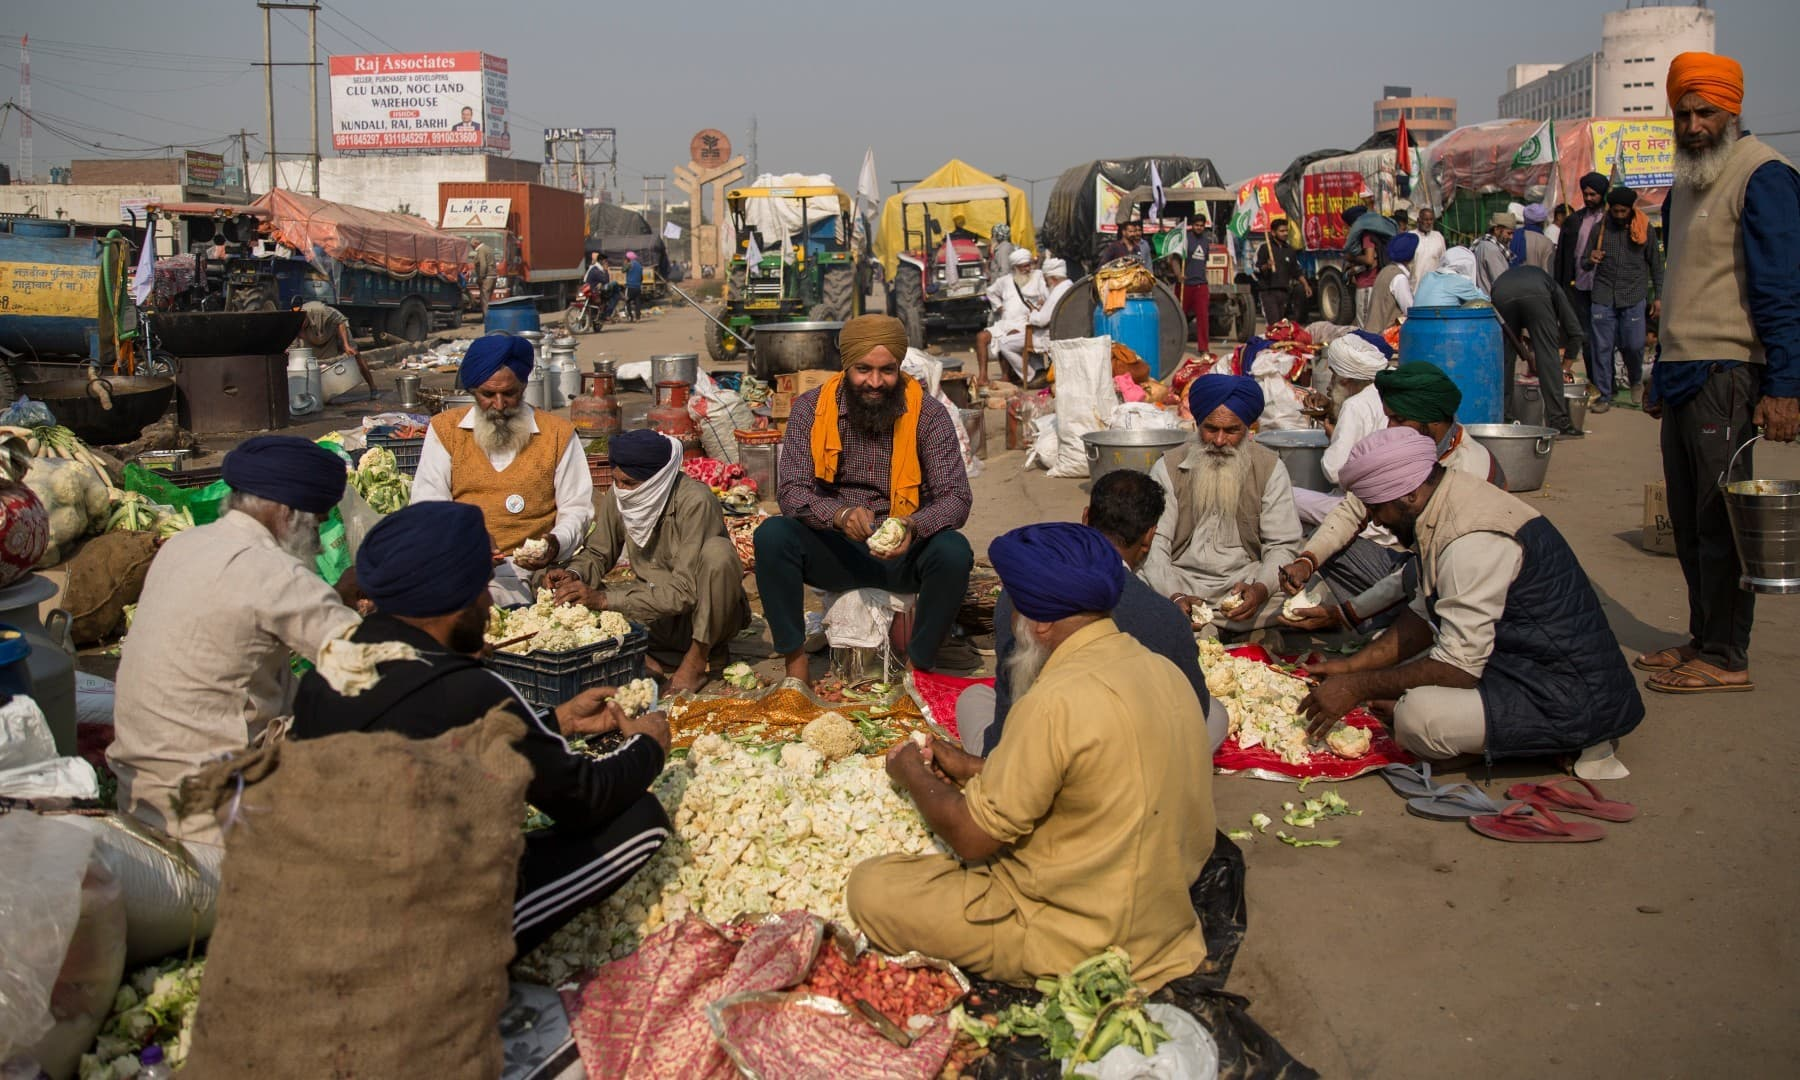 Protesting farmers prepare a meal for fellow farmers as they block a major highway during a protest at the Delhi-Haryana state border on Dec 1. — AP